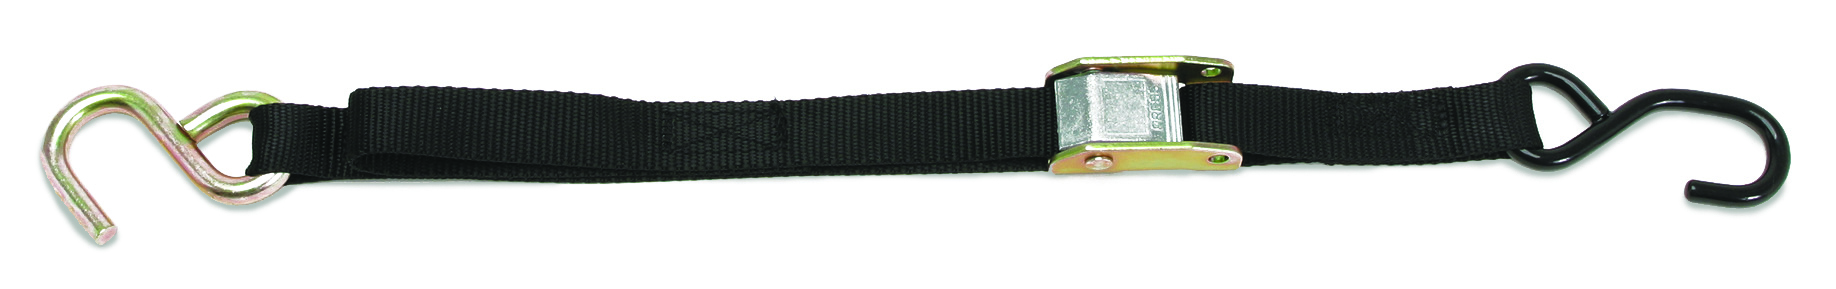 2-Pack BoatBuckle Pro Series Ratchet Transom Tie-Downs 1-Inch x 3.5-Feet